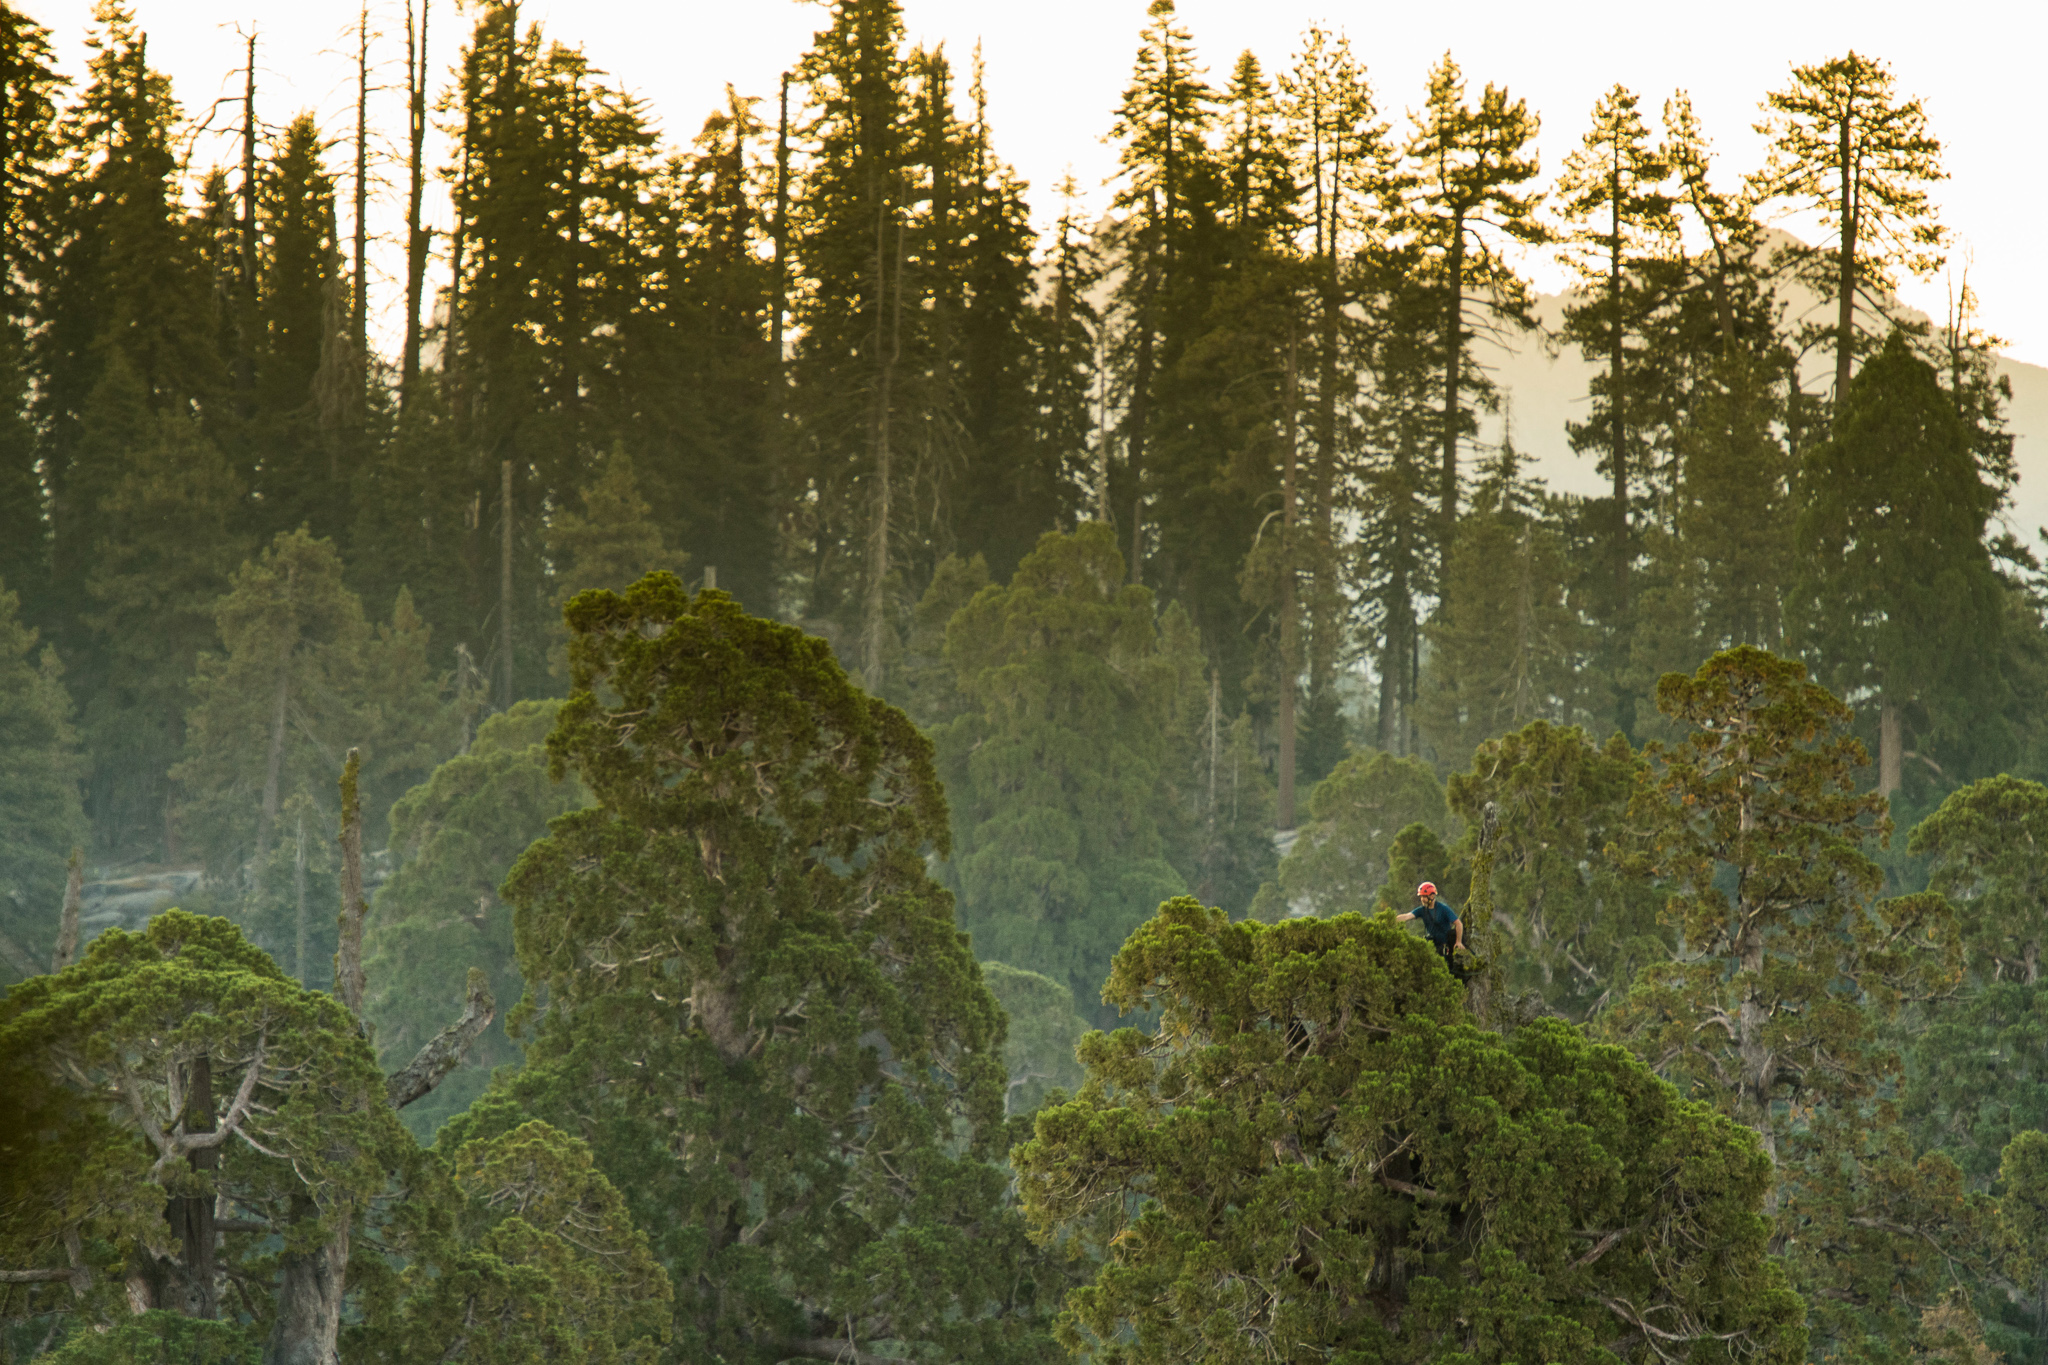 Anthony Ambrose collects foliage samples from the top of a giant sequoia tree in Sequoia National Park.